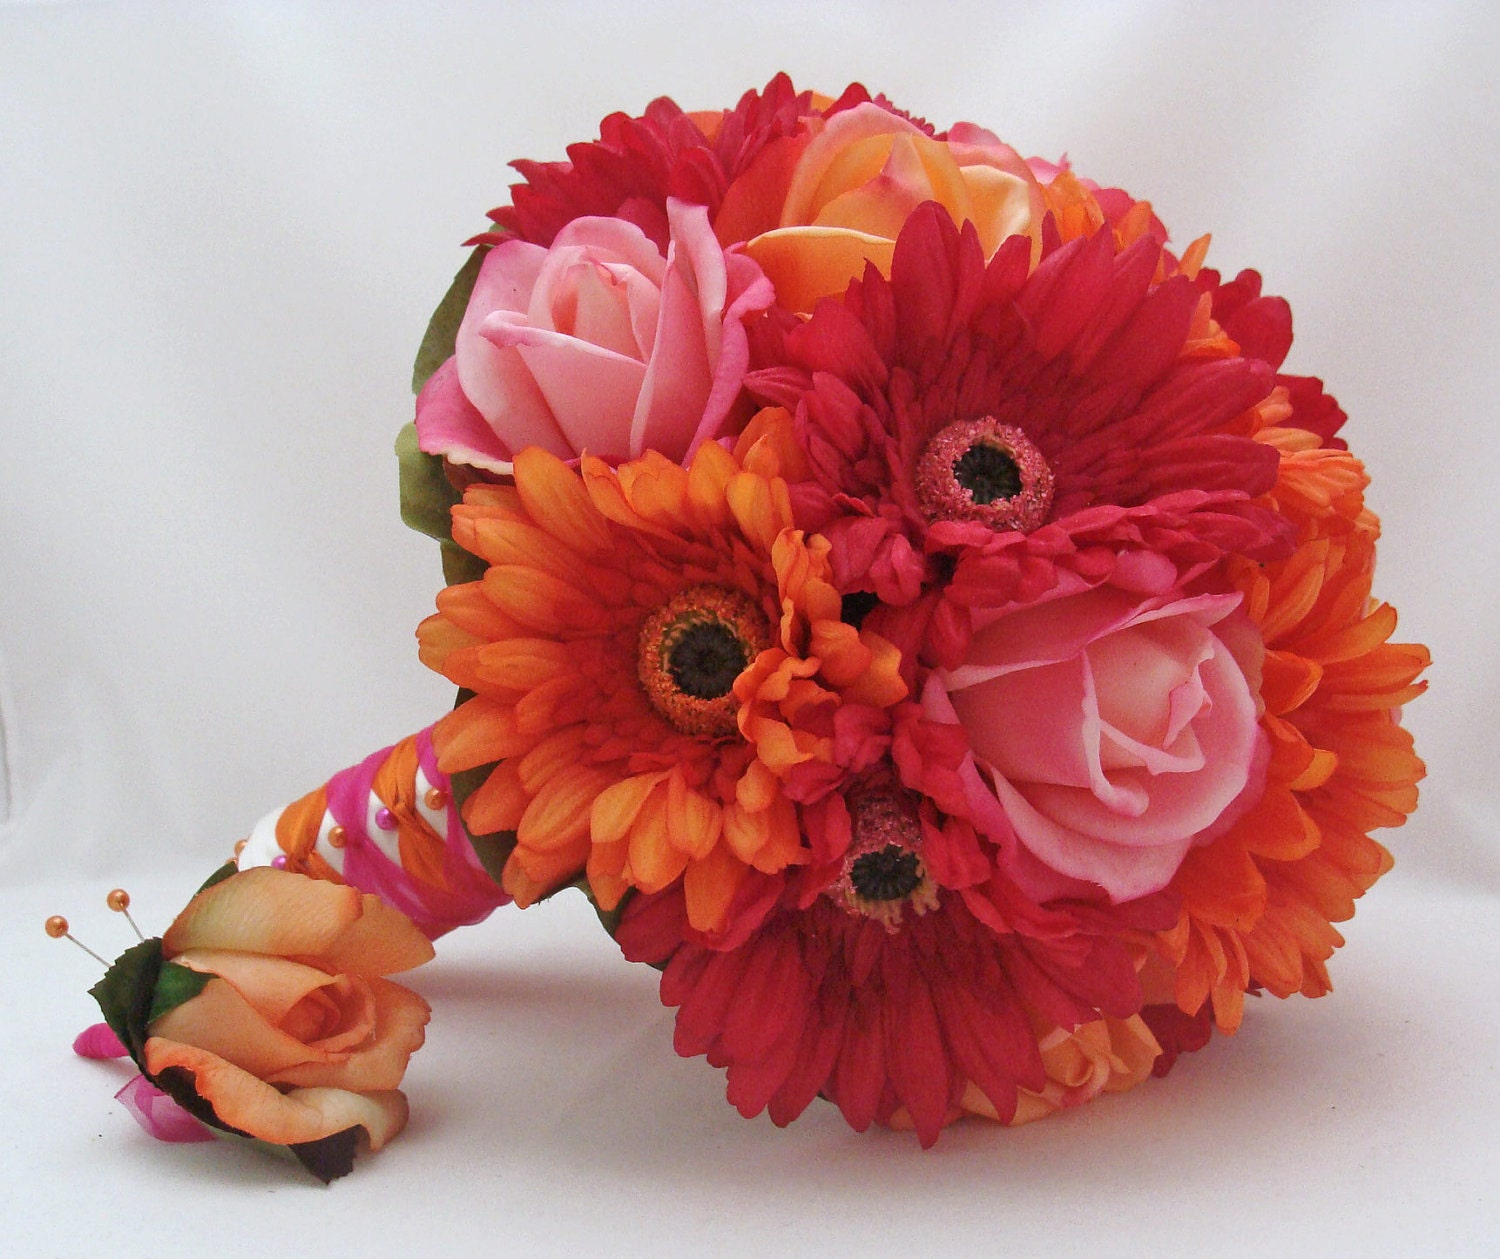 Fall Gerbera Daisy Bouquet Bridal Bouquet Real Touch